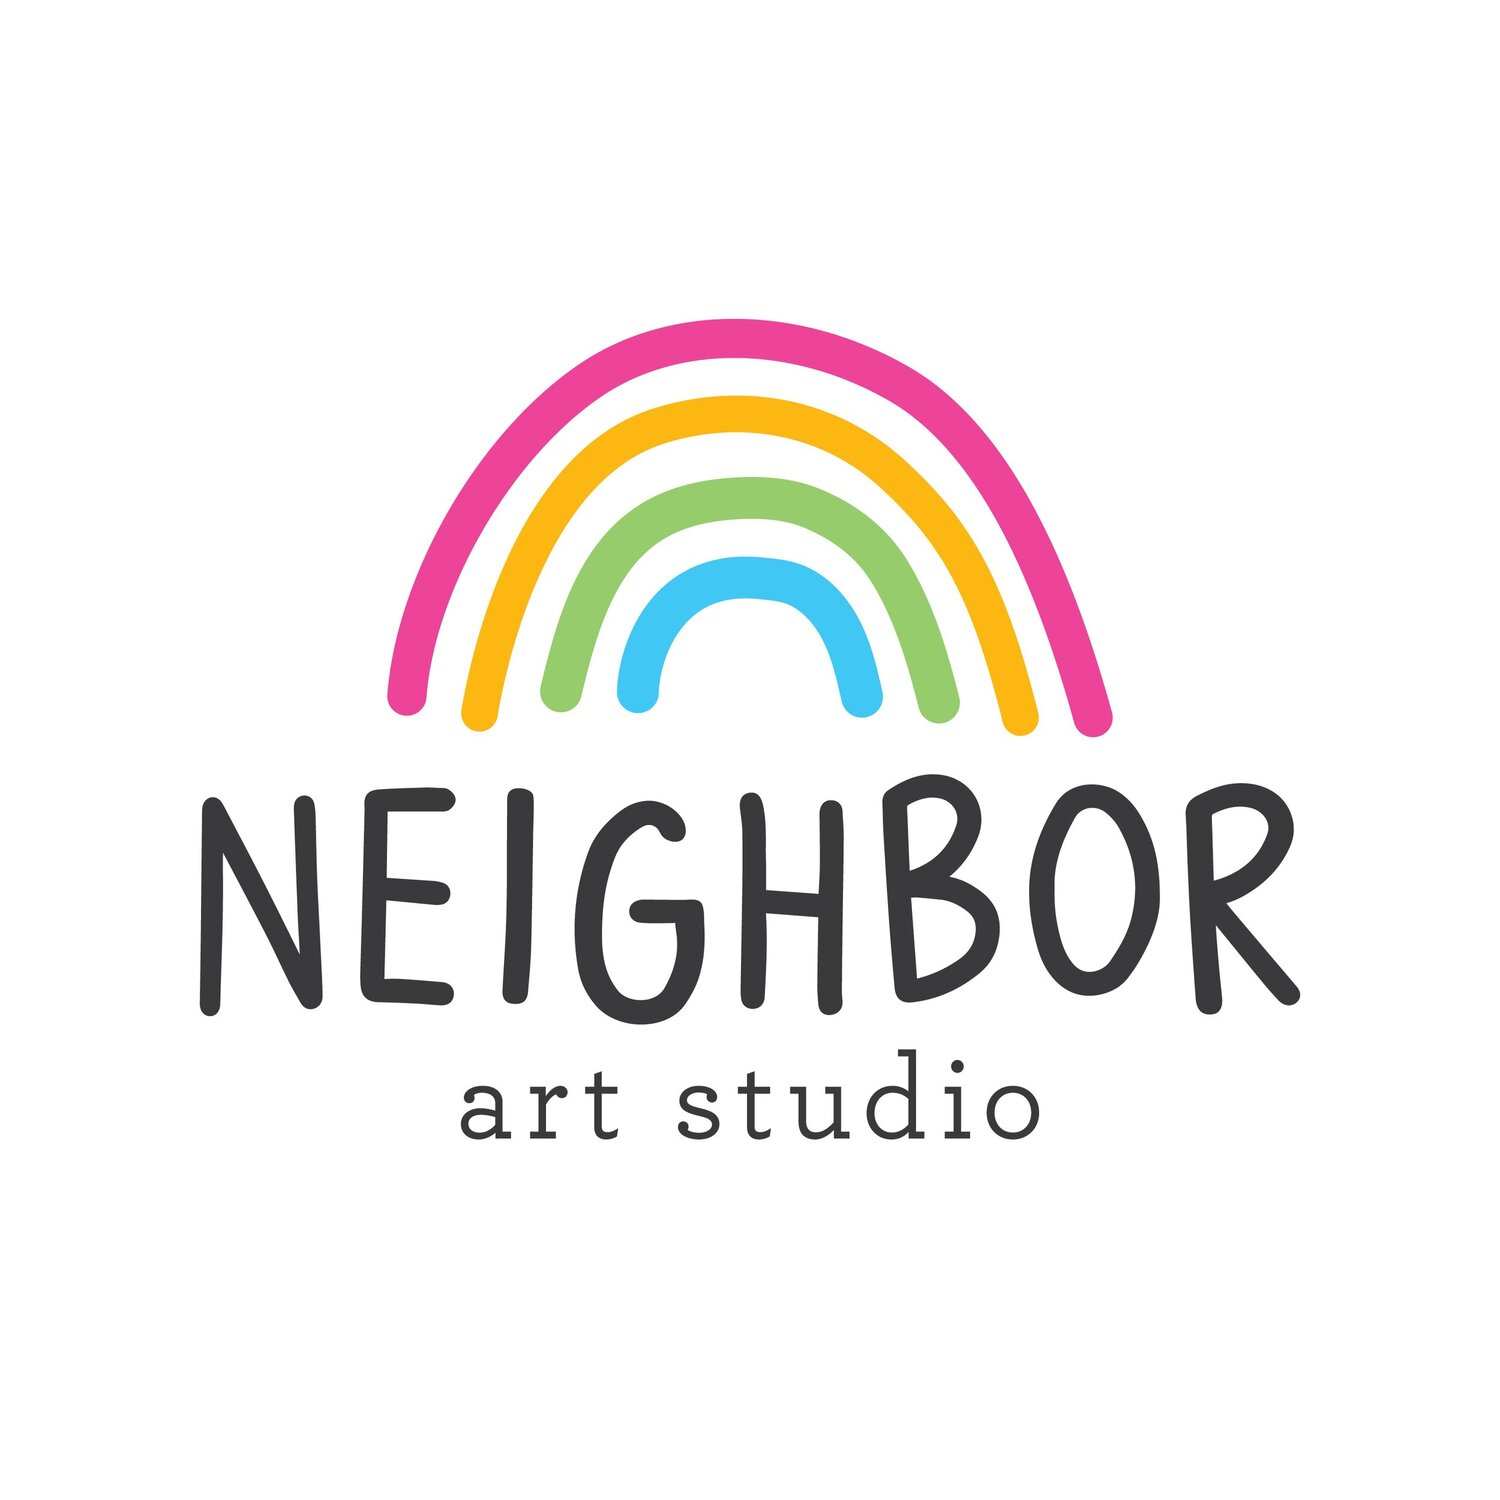 NEIGHBOR art studio